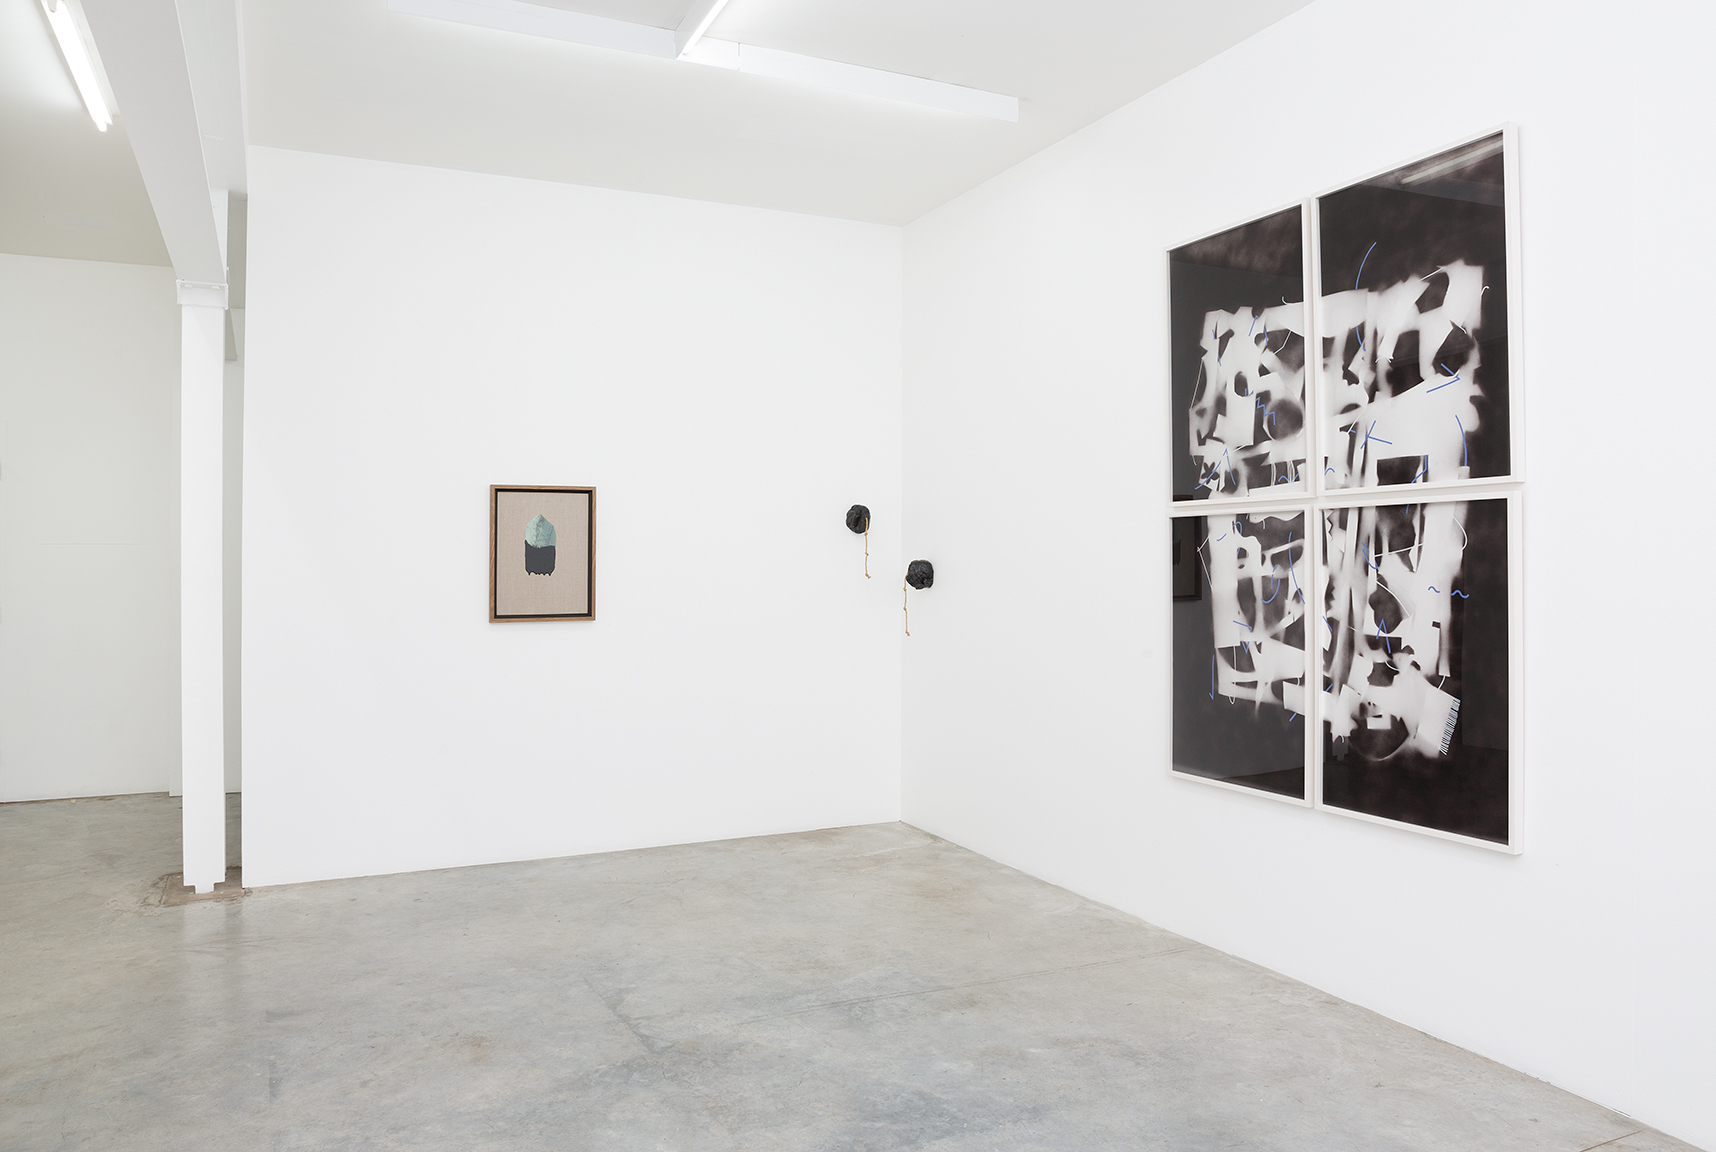 World Material installation view featuring Eloïse Kirk (L) & Connie Anthes (R). Image courtesy the artist and Darren Knight Gallery, Sydney. Photography: Simon Hewson